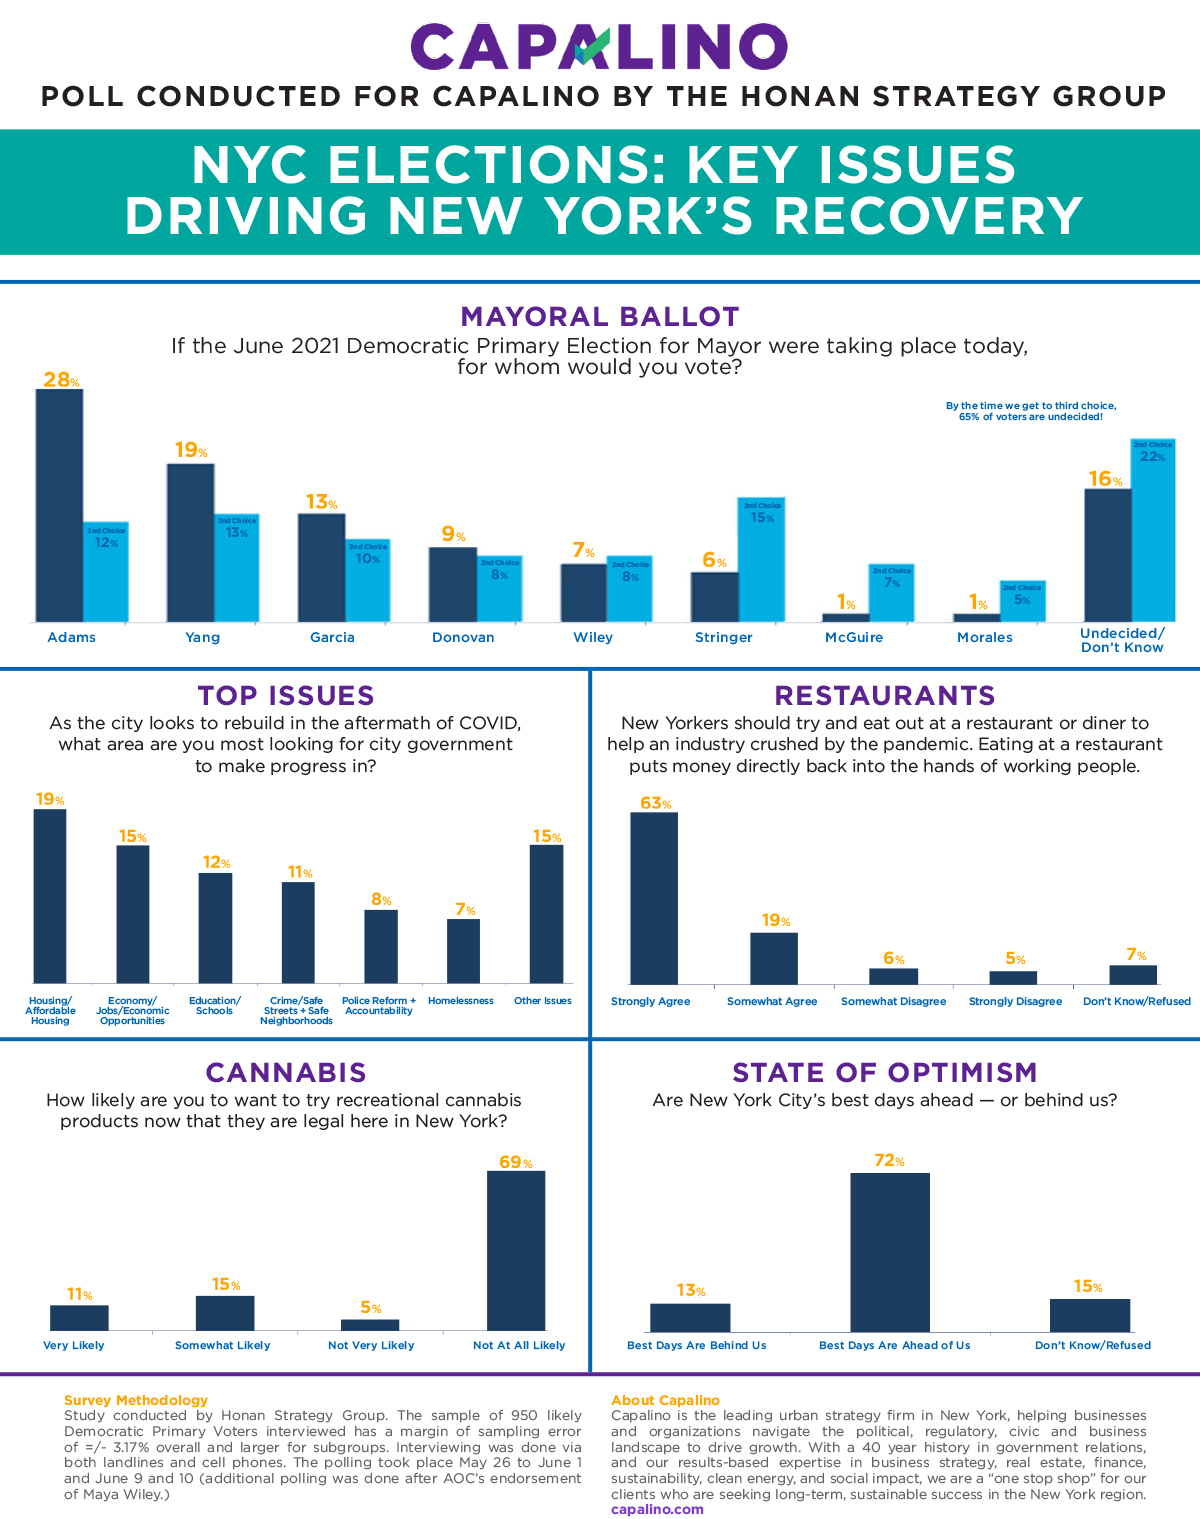 PR News: Capalino Releases New Poll about NYC Mayoral Election and Optimism for New York's Future